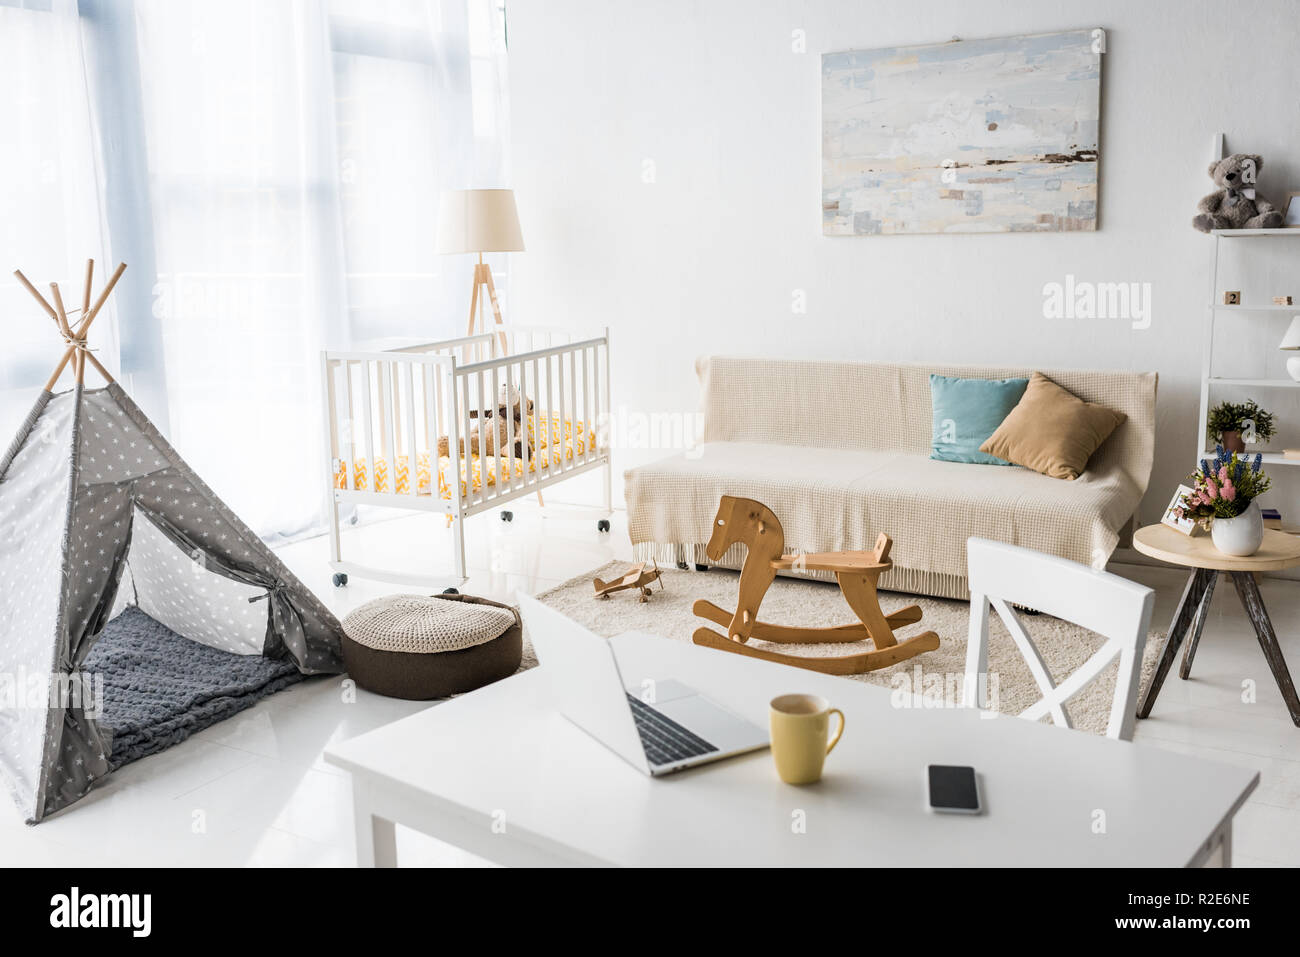 modern interior design of nursery room with baby wigwam and crib - Stock Image